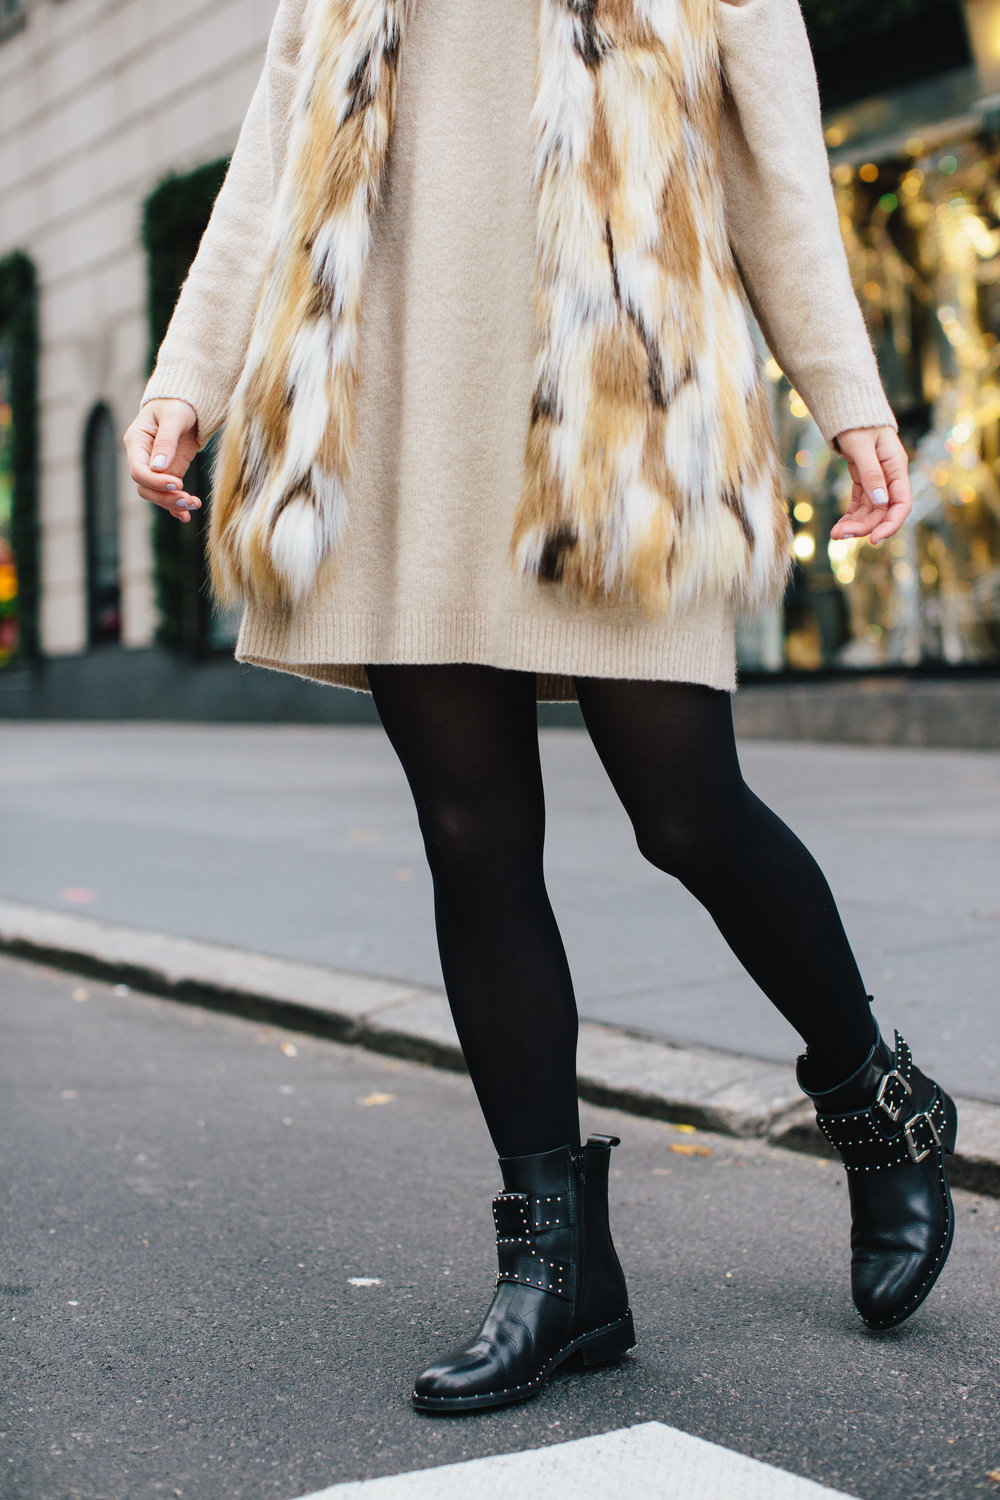 Calico Fur Vest Black Buckle Booties 5 Bad Habits To Ditch In The New Year Esther Santer Fashion Blog NYC Street Style Blogger Outfit OOTD Trendy DSW Shoes Women Girl Holiday Season Window Shopping New York City Tights Beige Sweater Dress  Winter Cozy.JPG